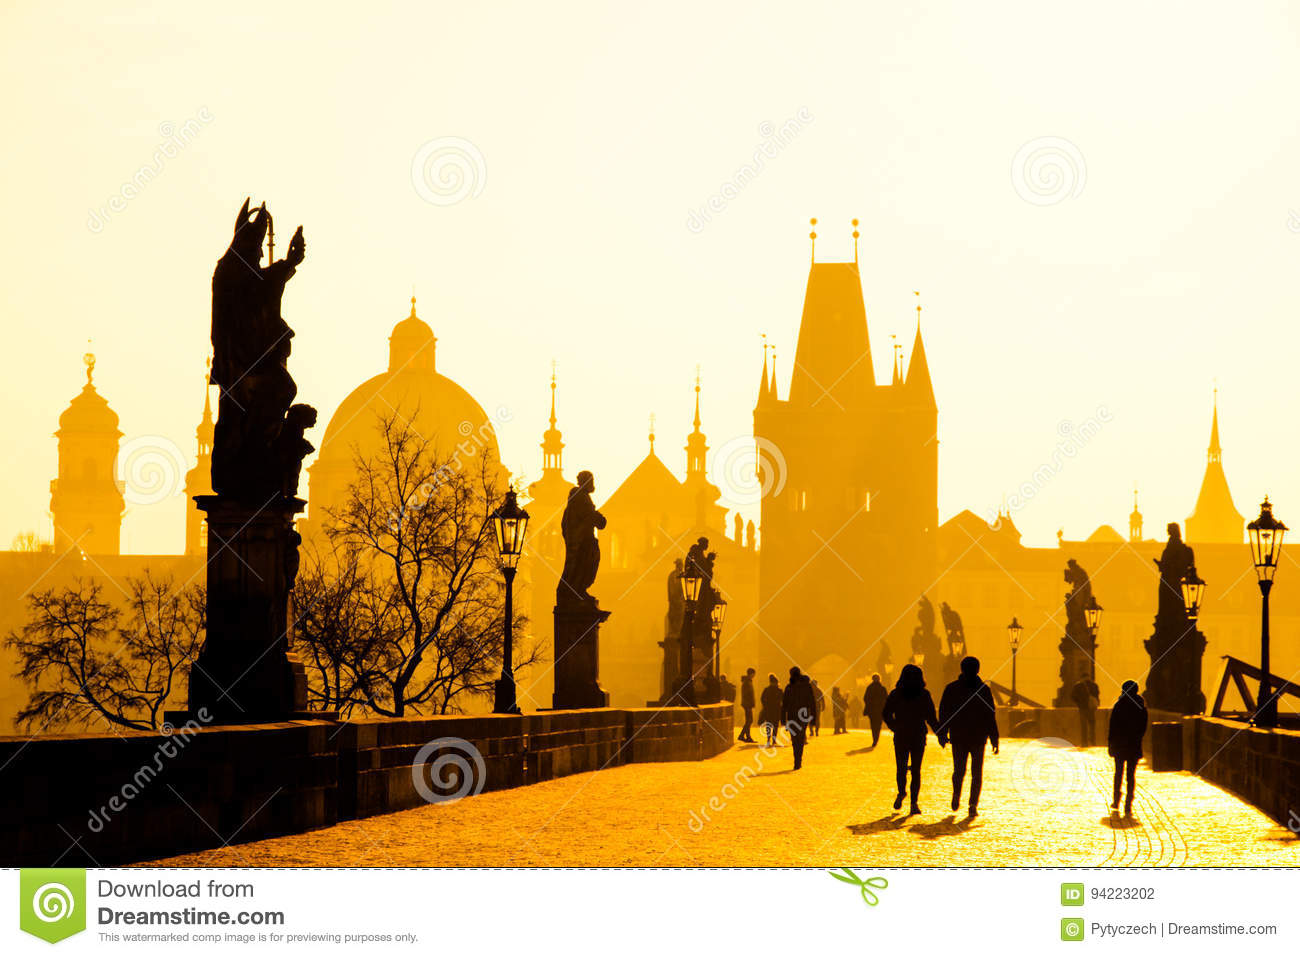 Foggy morning on Charles Bridge, Prague, Czech Republic. Sunrise with silhouettes of walking people, statues and Old